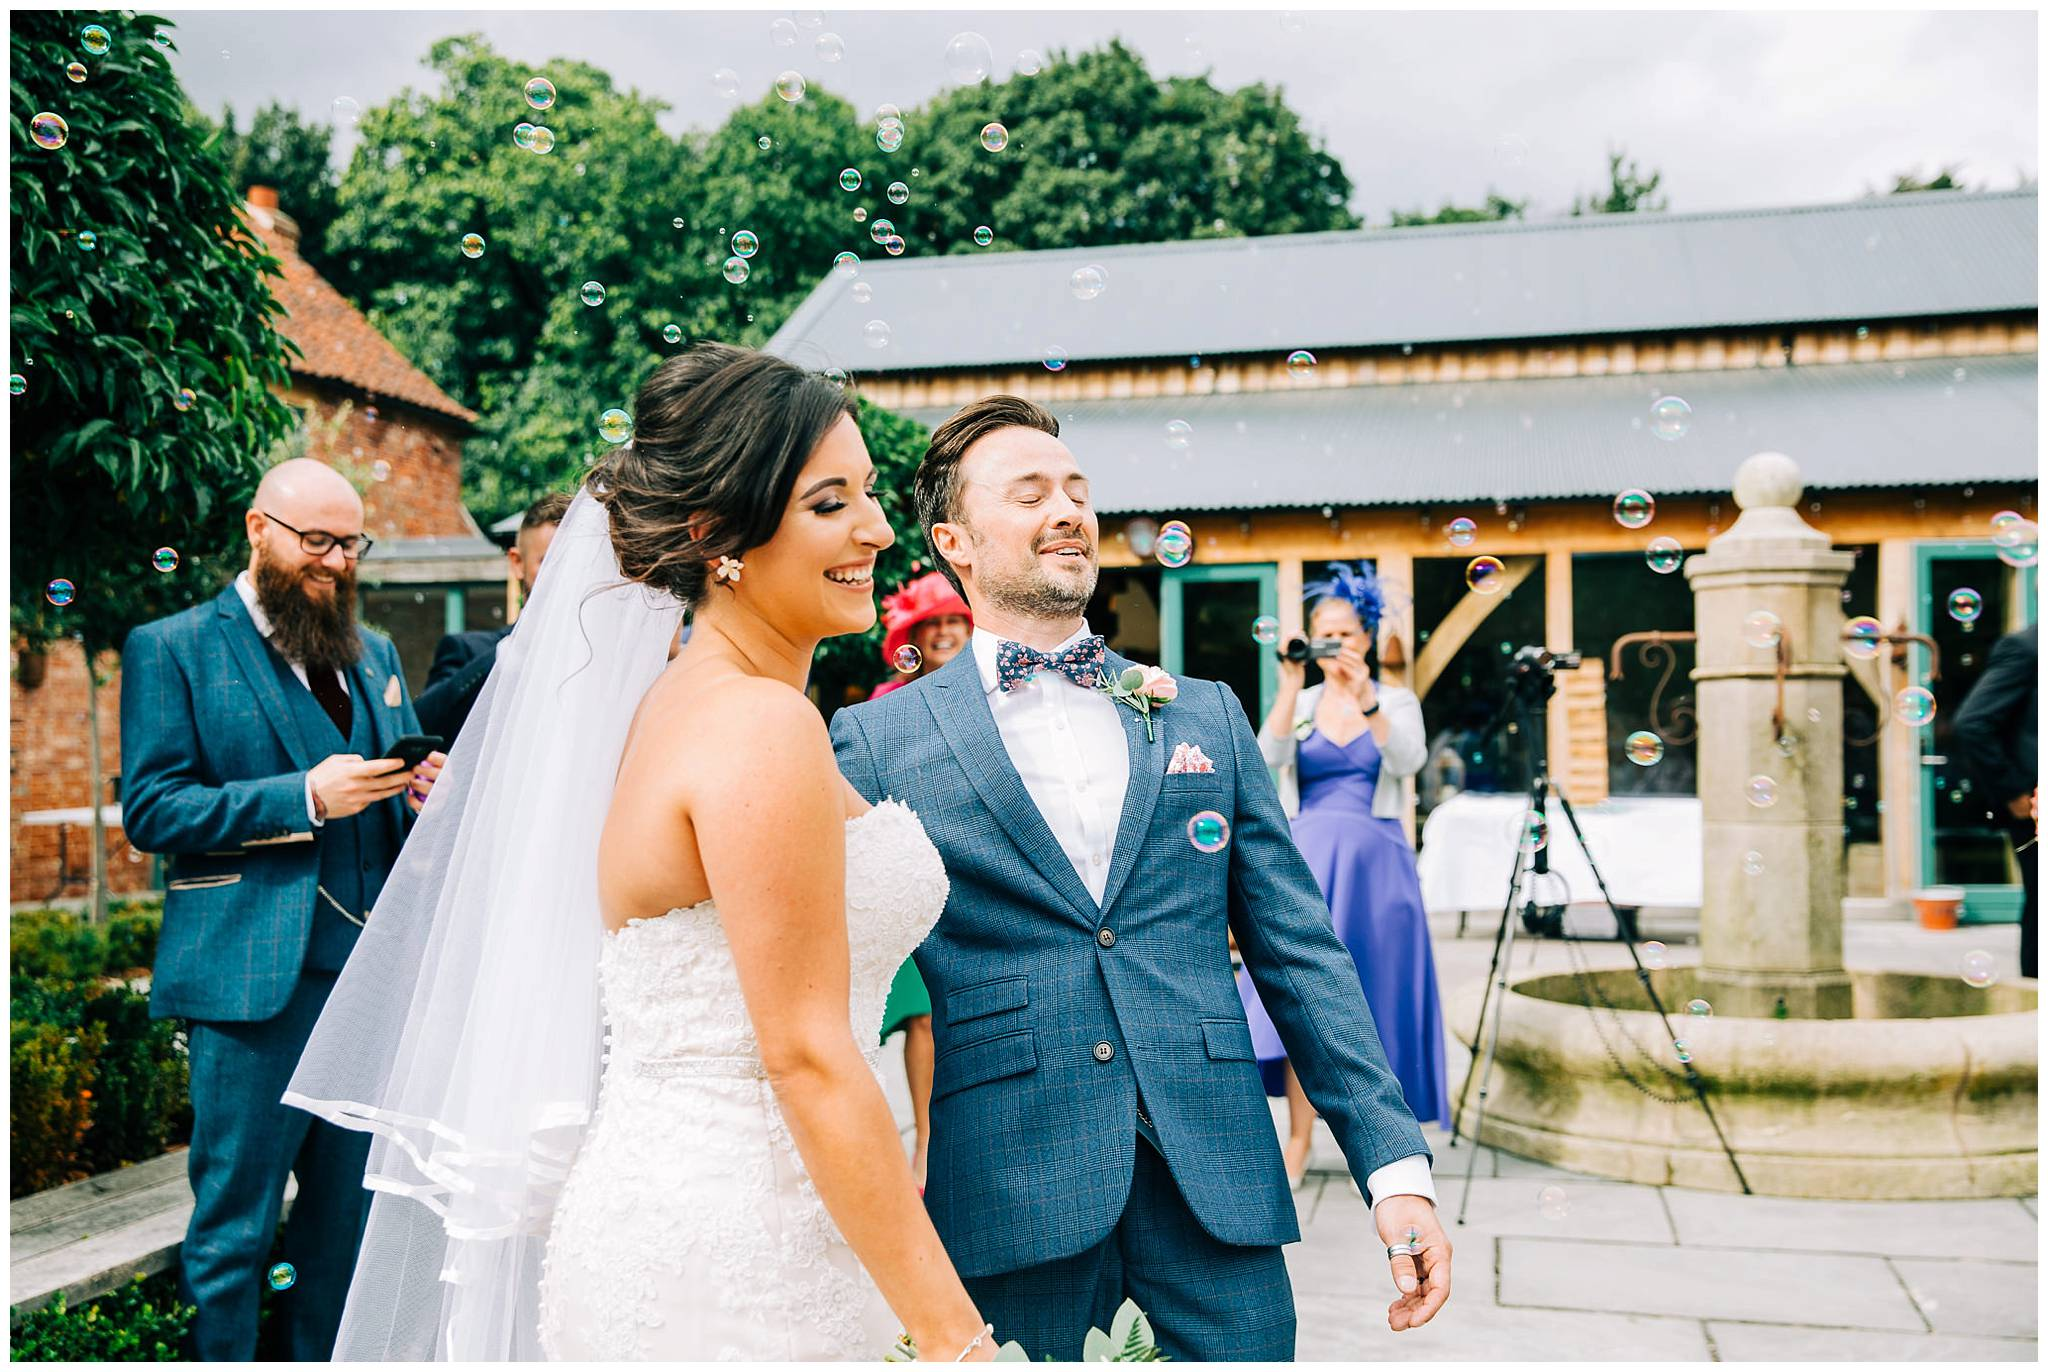 Chic Summer Wedding at Hazel Gap Barn - Nottinghamshire Photographer31.jpg